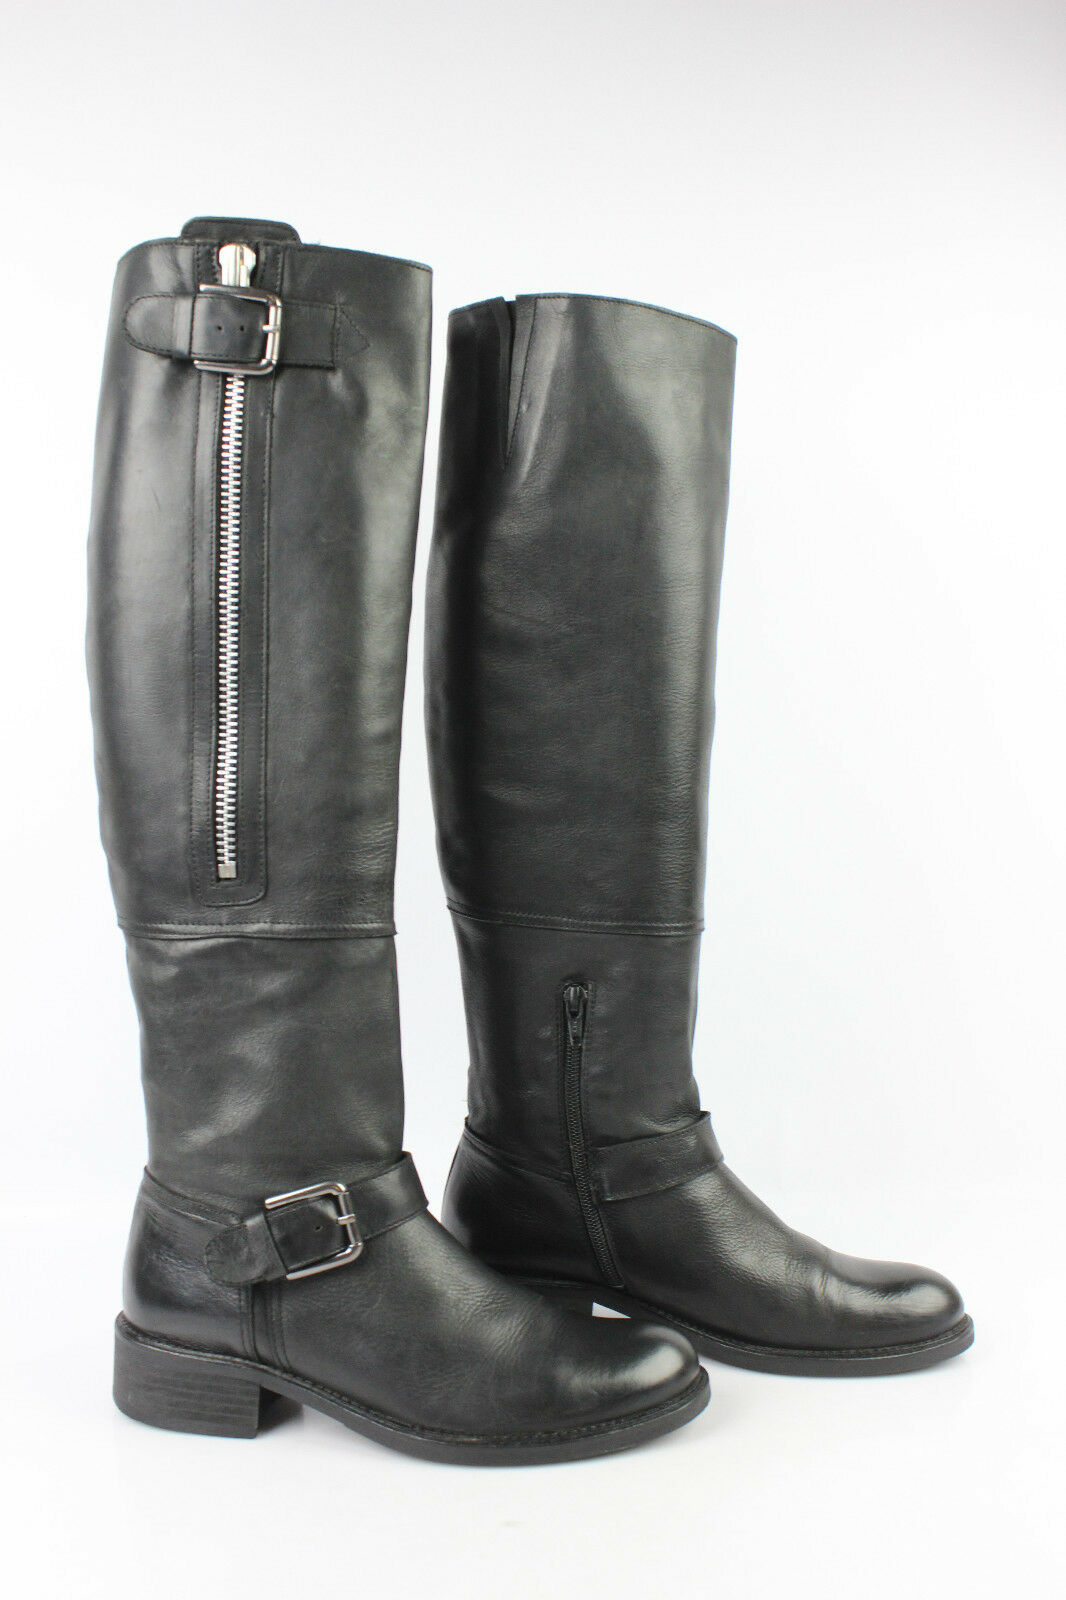 Boots High Style Biker MURATTI Black Leather T 36 VERY GOOD CONDITION